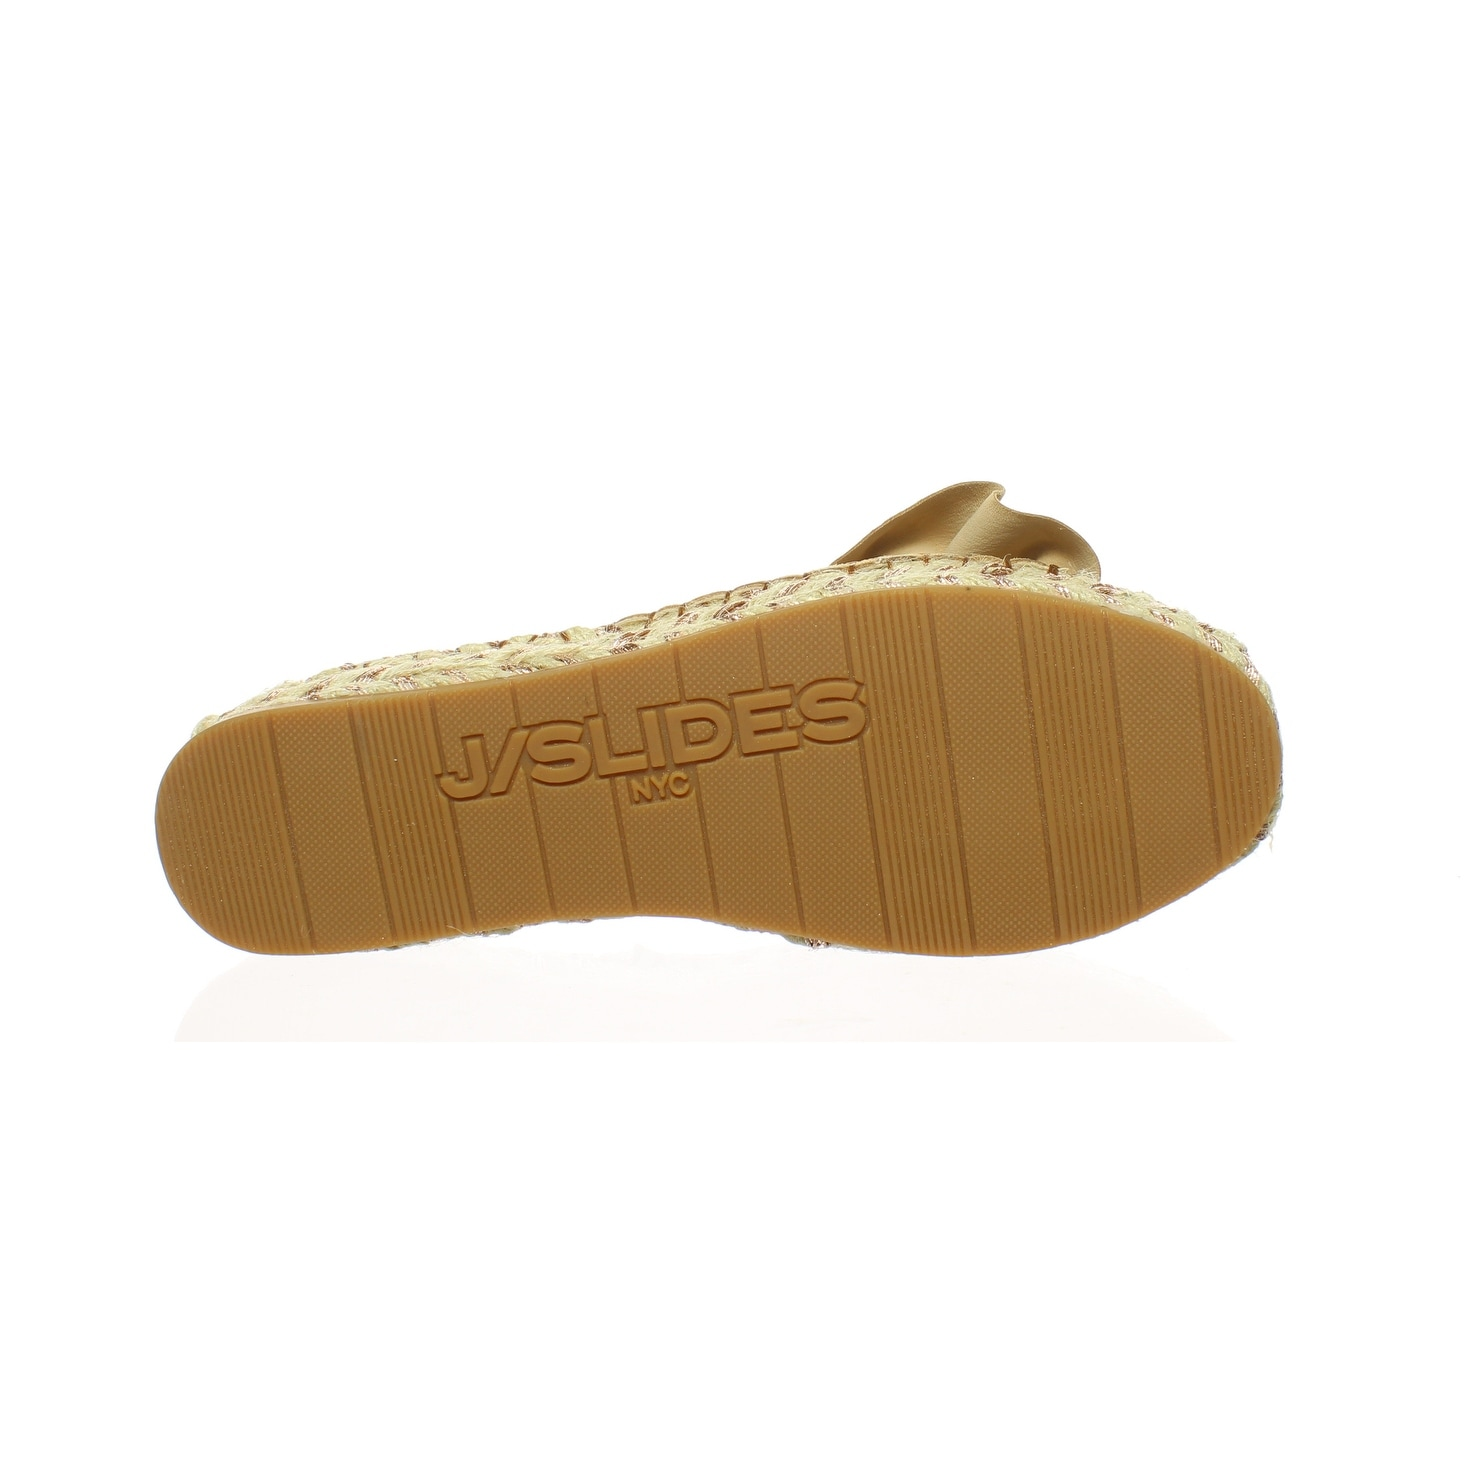 139747d1deff Shop J slides Womens Ritsy Camel Espadrilles Size 8.5 - Free Shipping On  Orders Over  45 - Overstock.com - 23432715